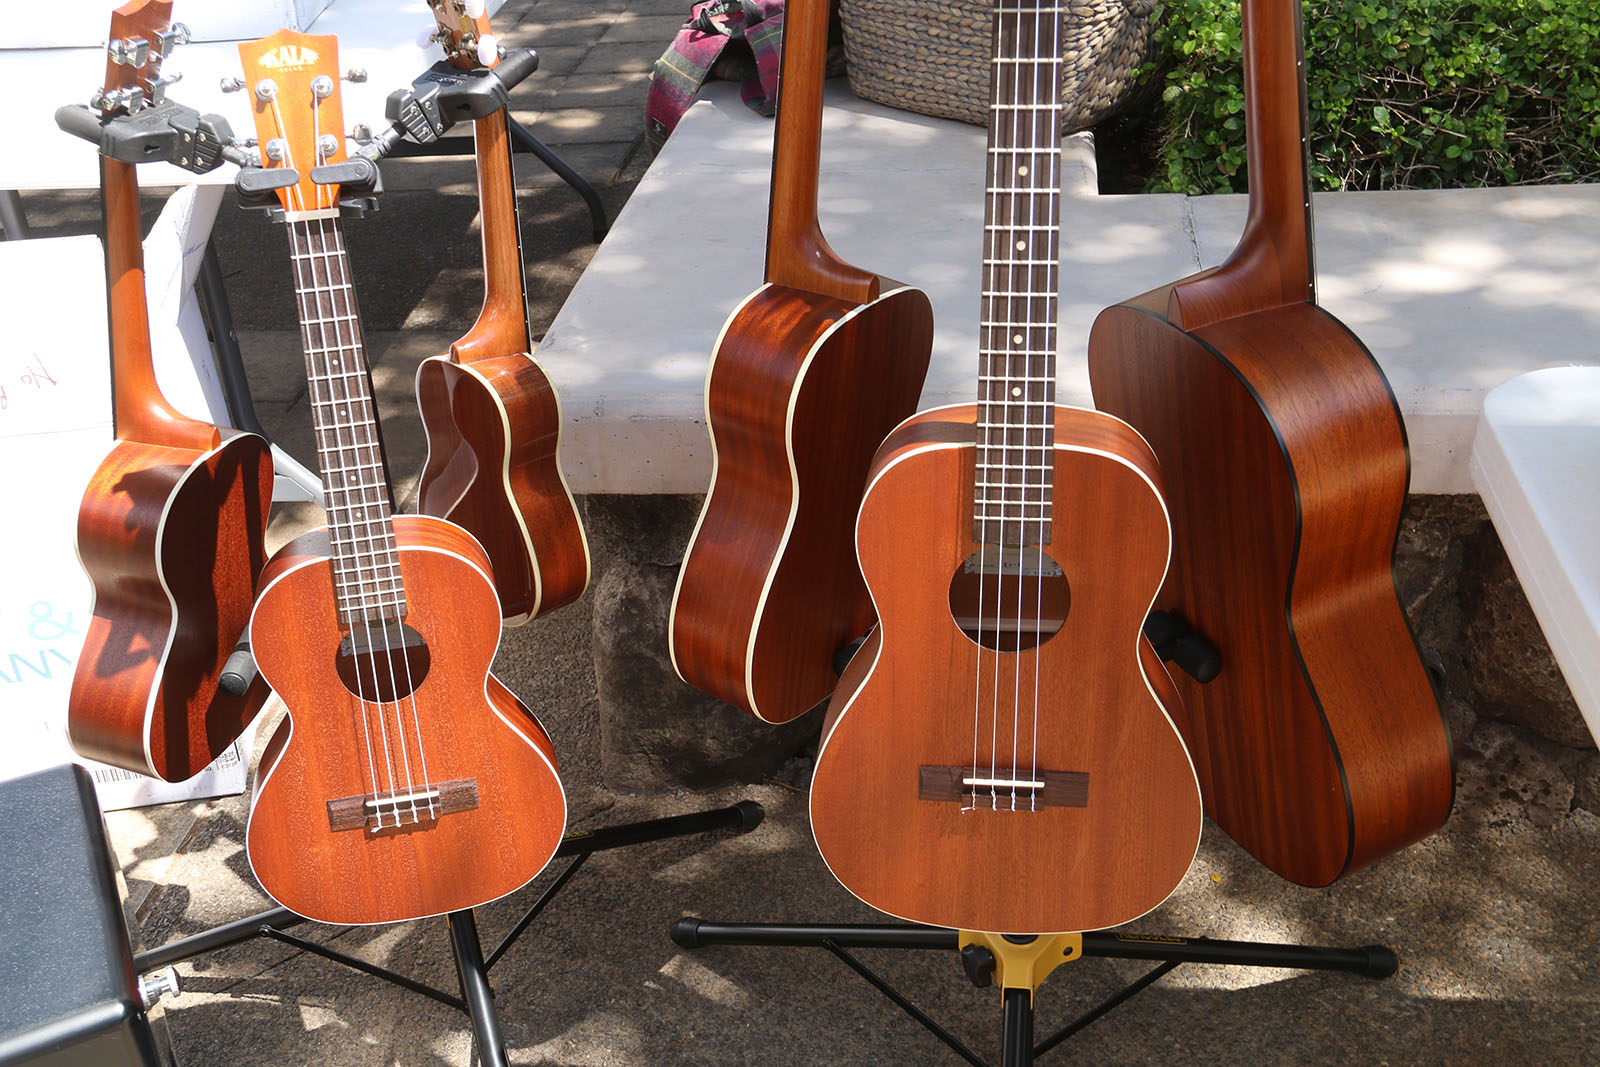 A rack of guitars and ukulele.